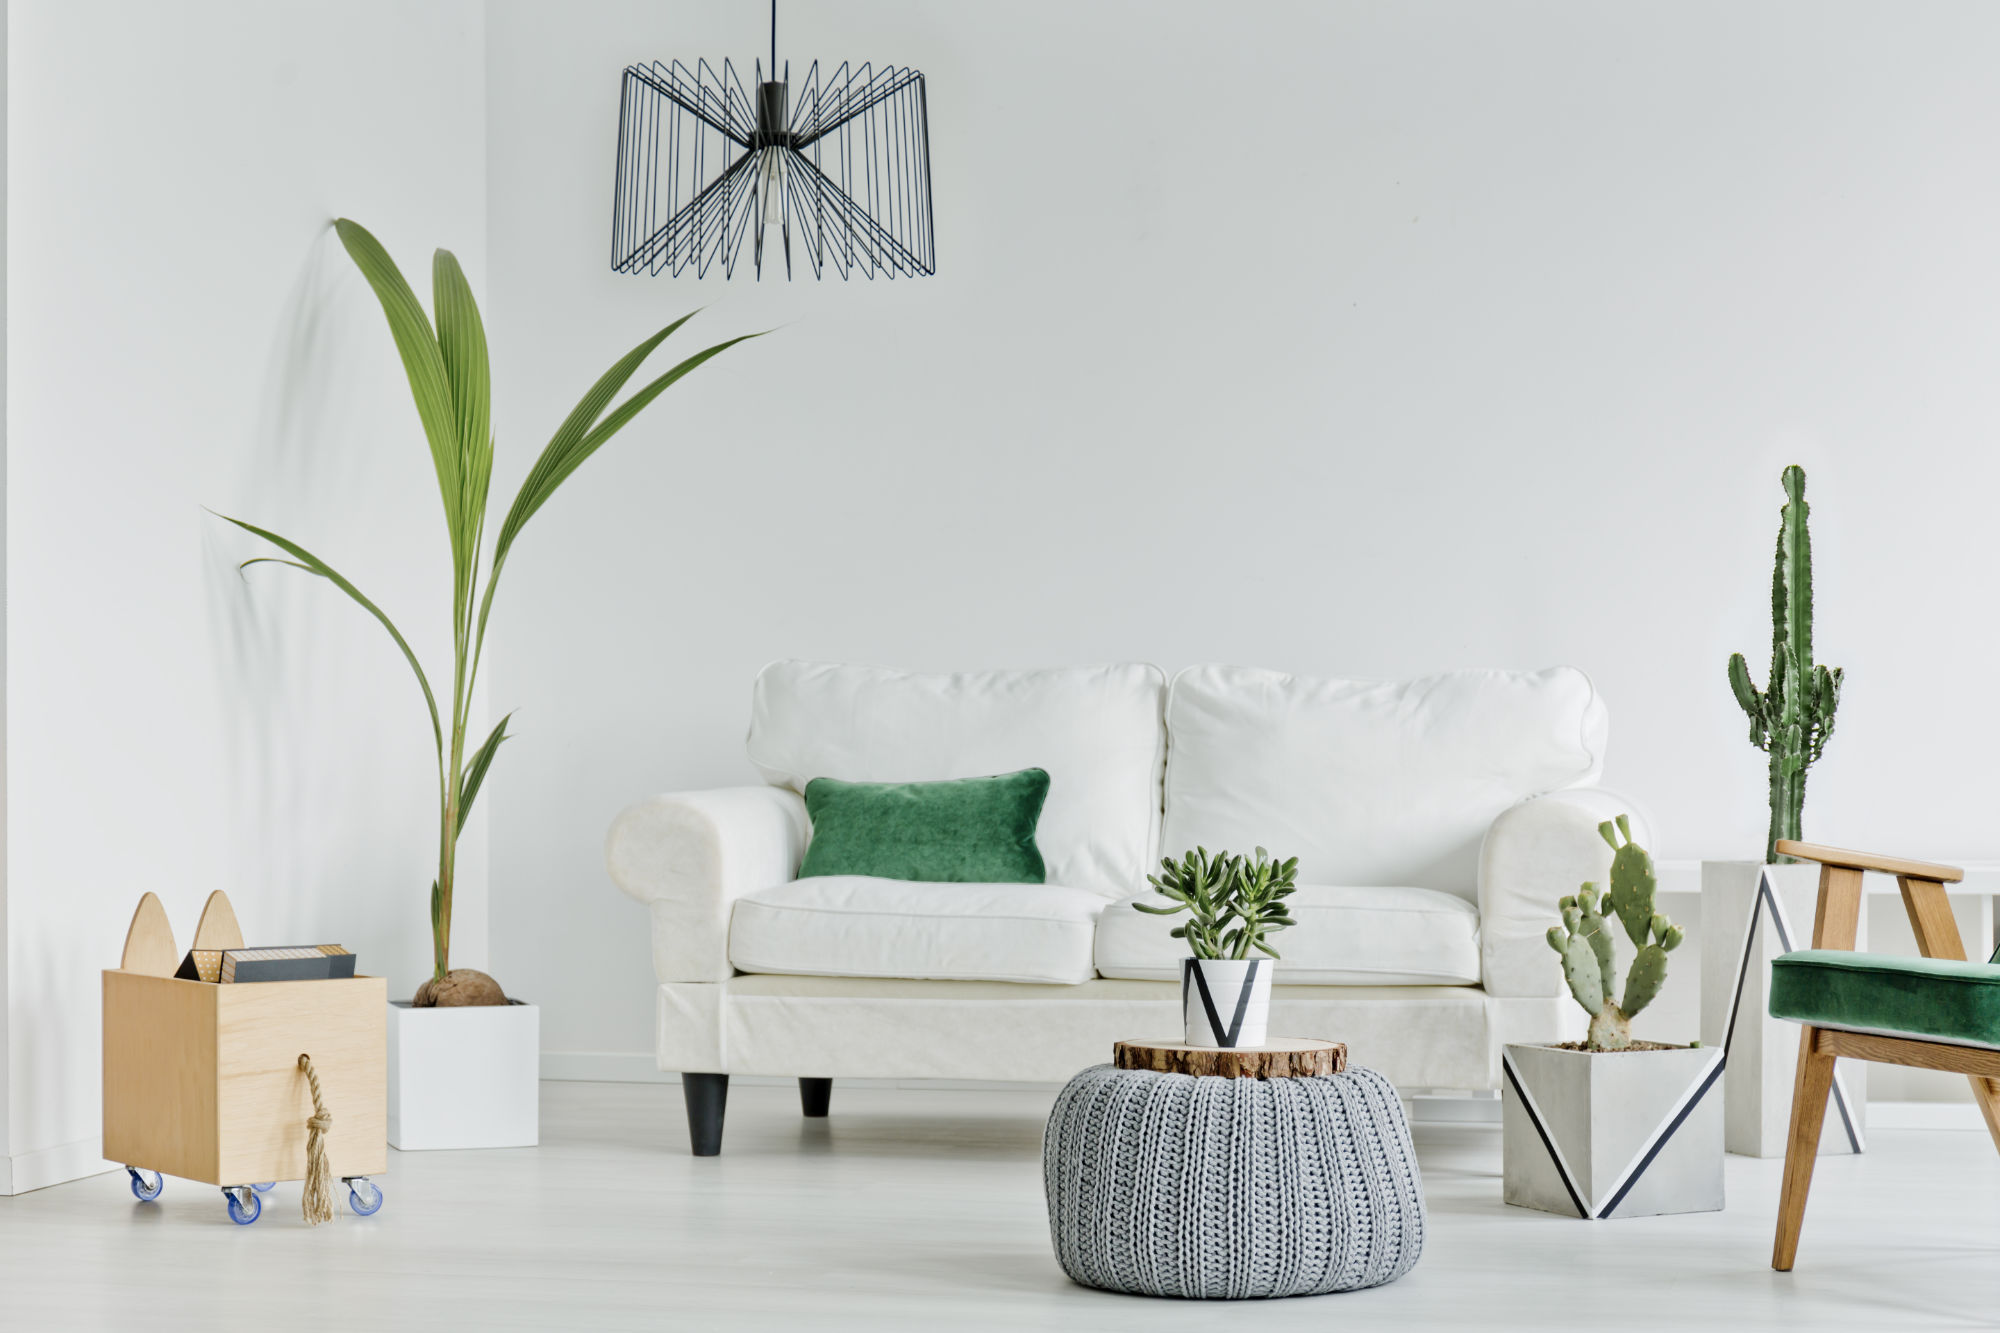 The Power of Plants: 10 houseplants to purify the air in your home